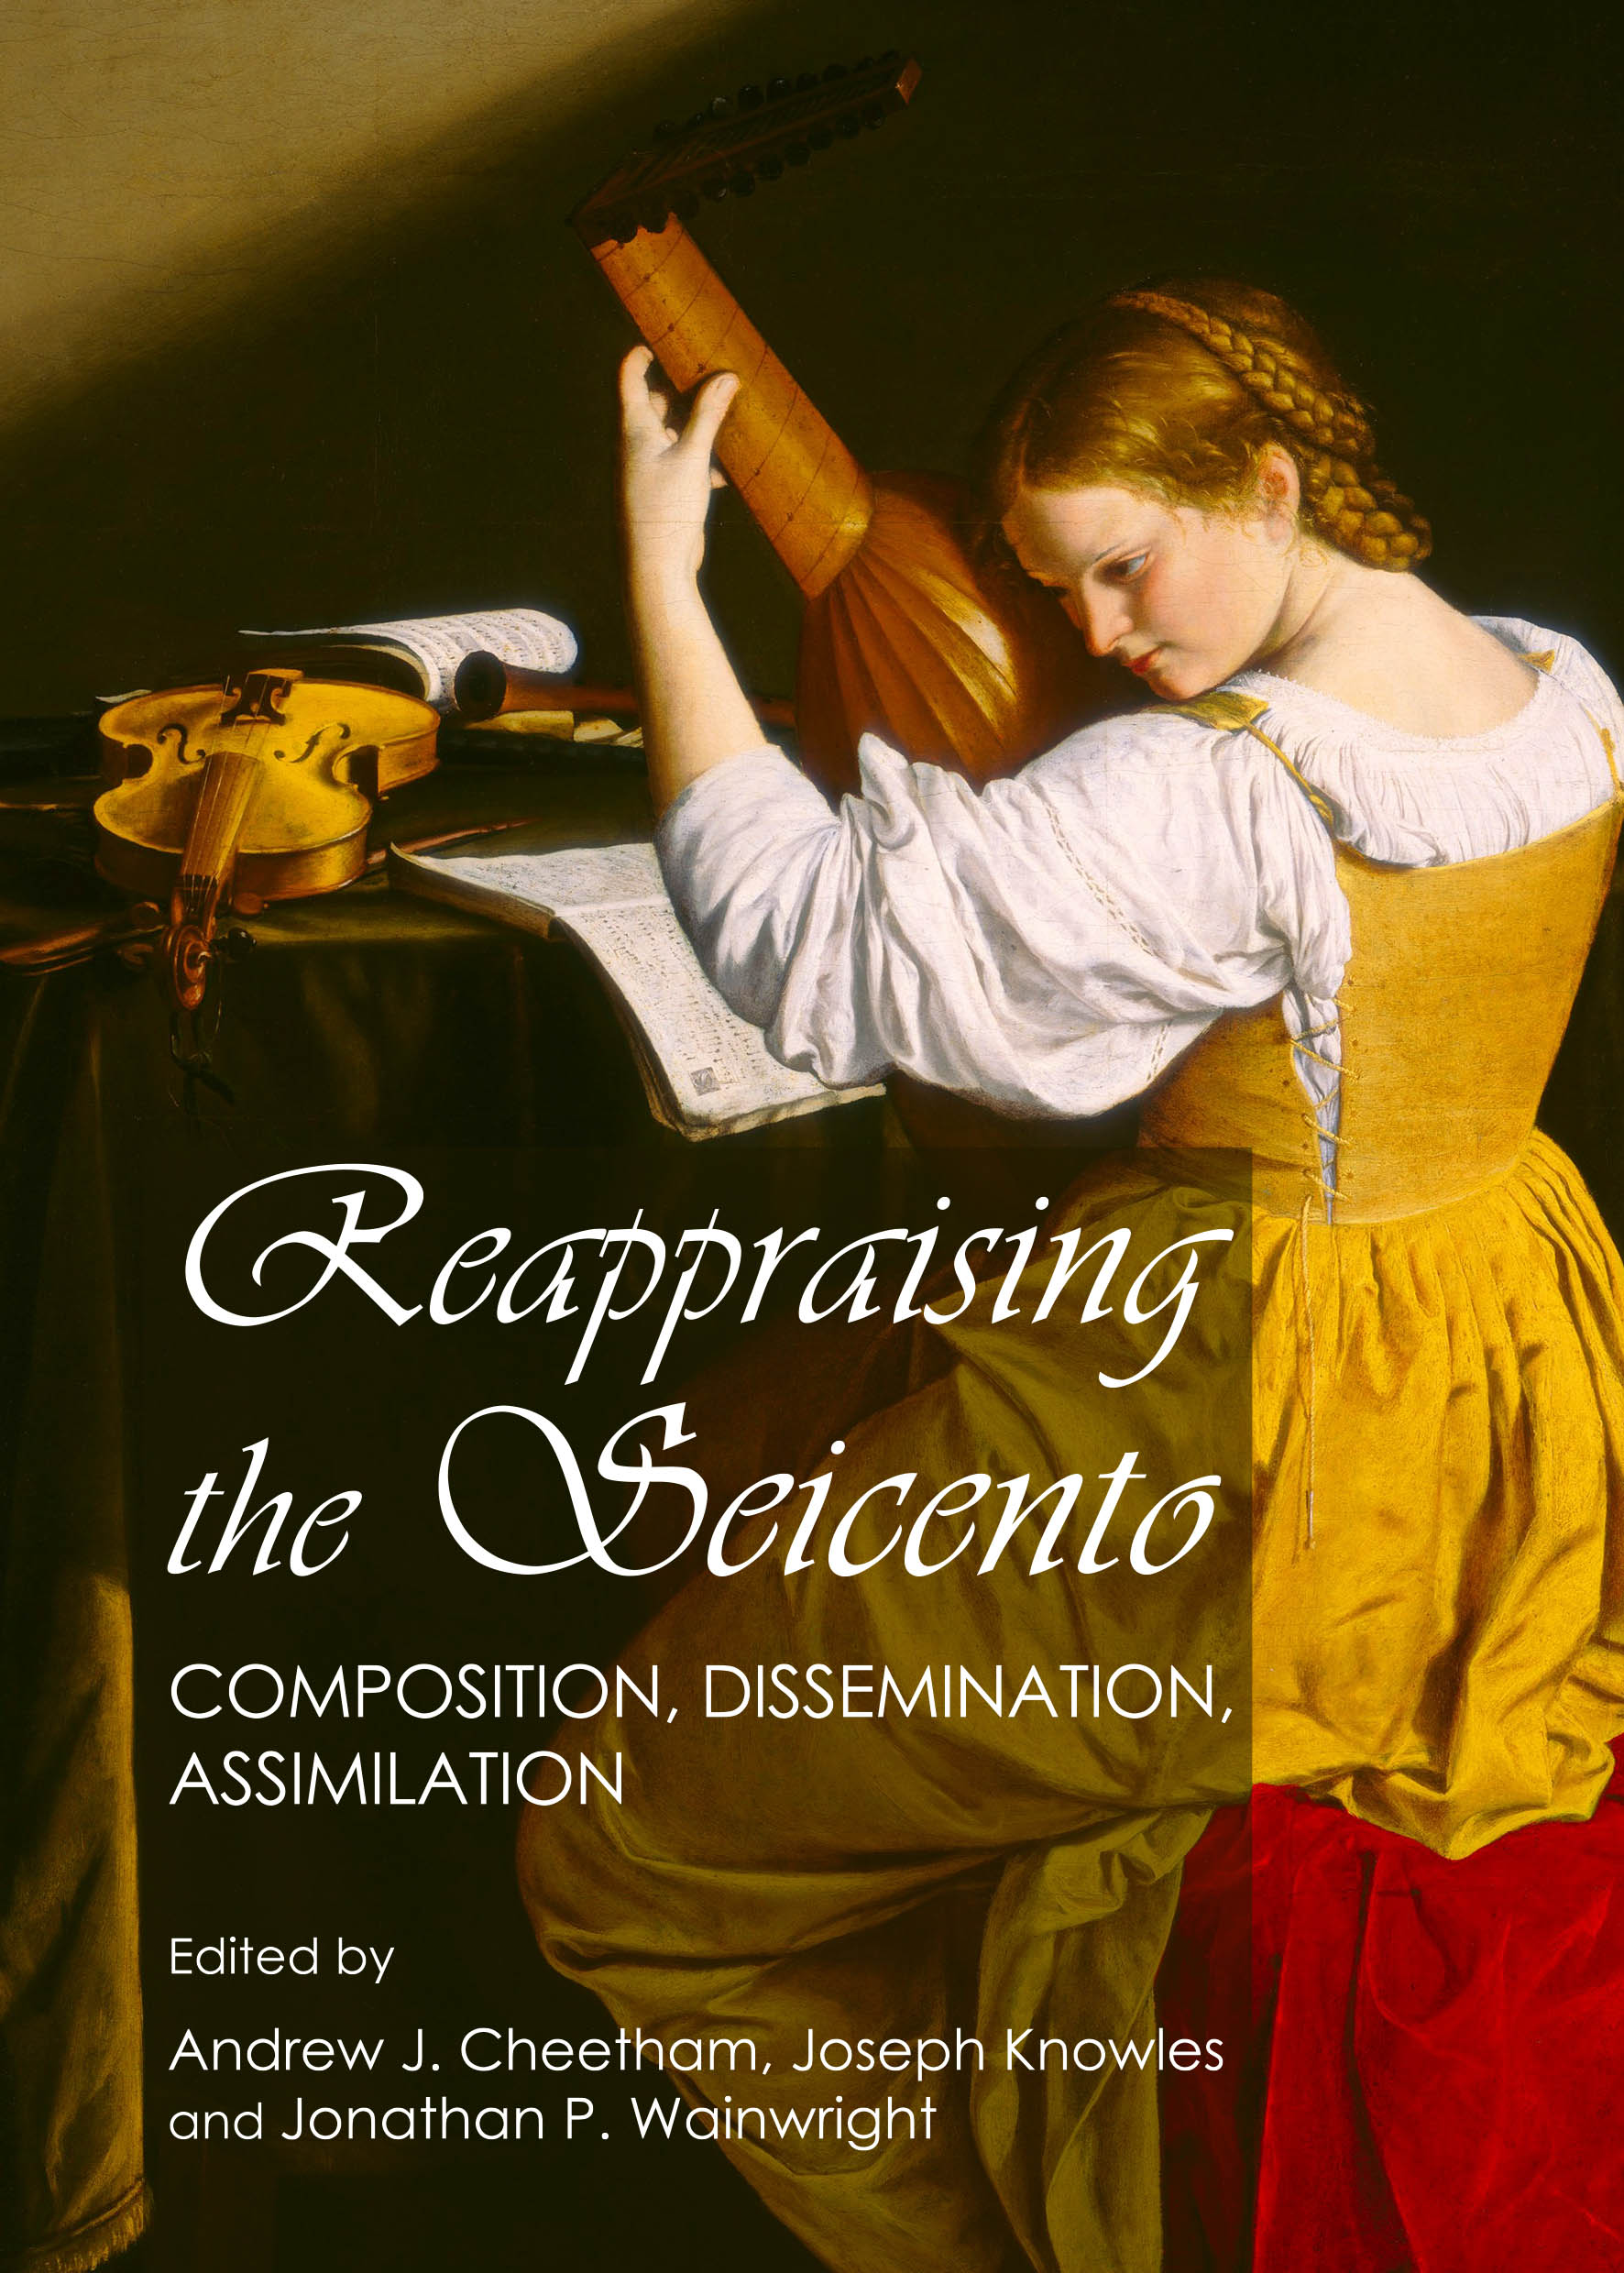 Reappraising the Seicento: Composition, Dissemination, Assimilation